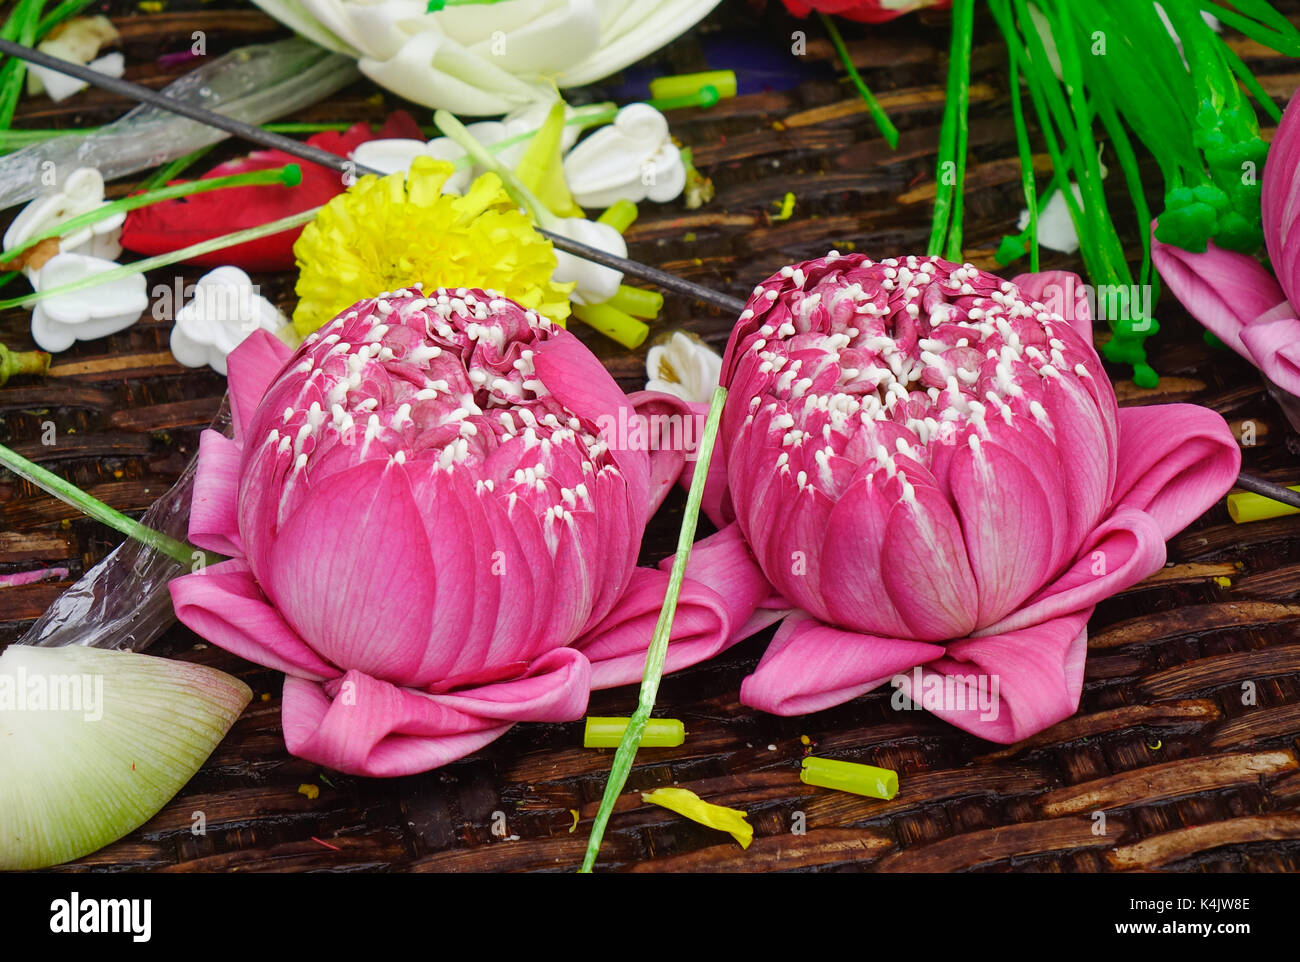 Lotus flowers for sale at hindu temple in bangkok thailand stock lotus flowers for sale at hindu temple in bangkok thailand izmirmasajfo